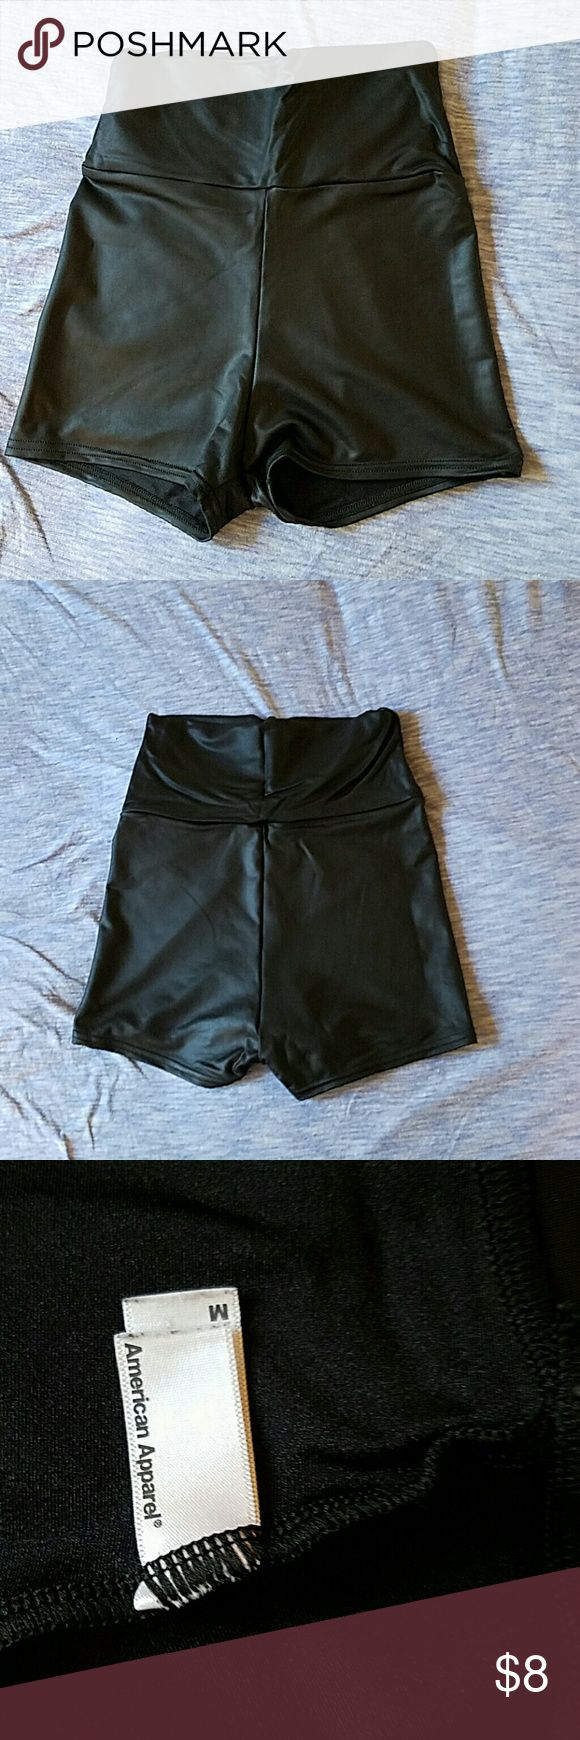 American Apparal High Waisted Short Short These high wasted short shorts are super sexy and fun.  Pleather material. American Apparel Shorts